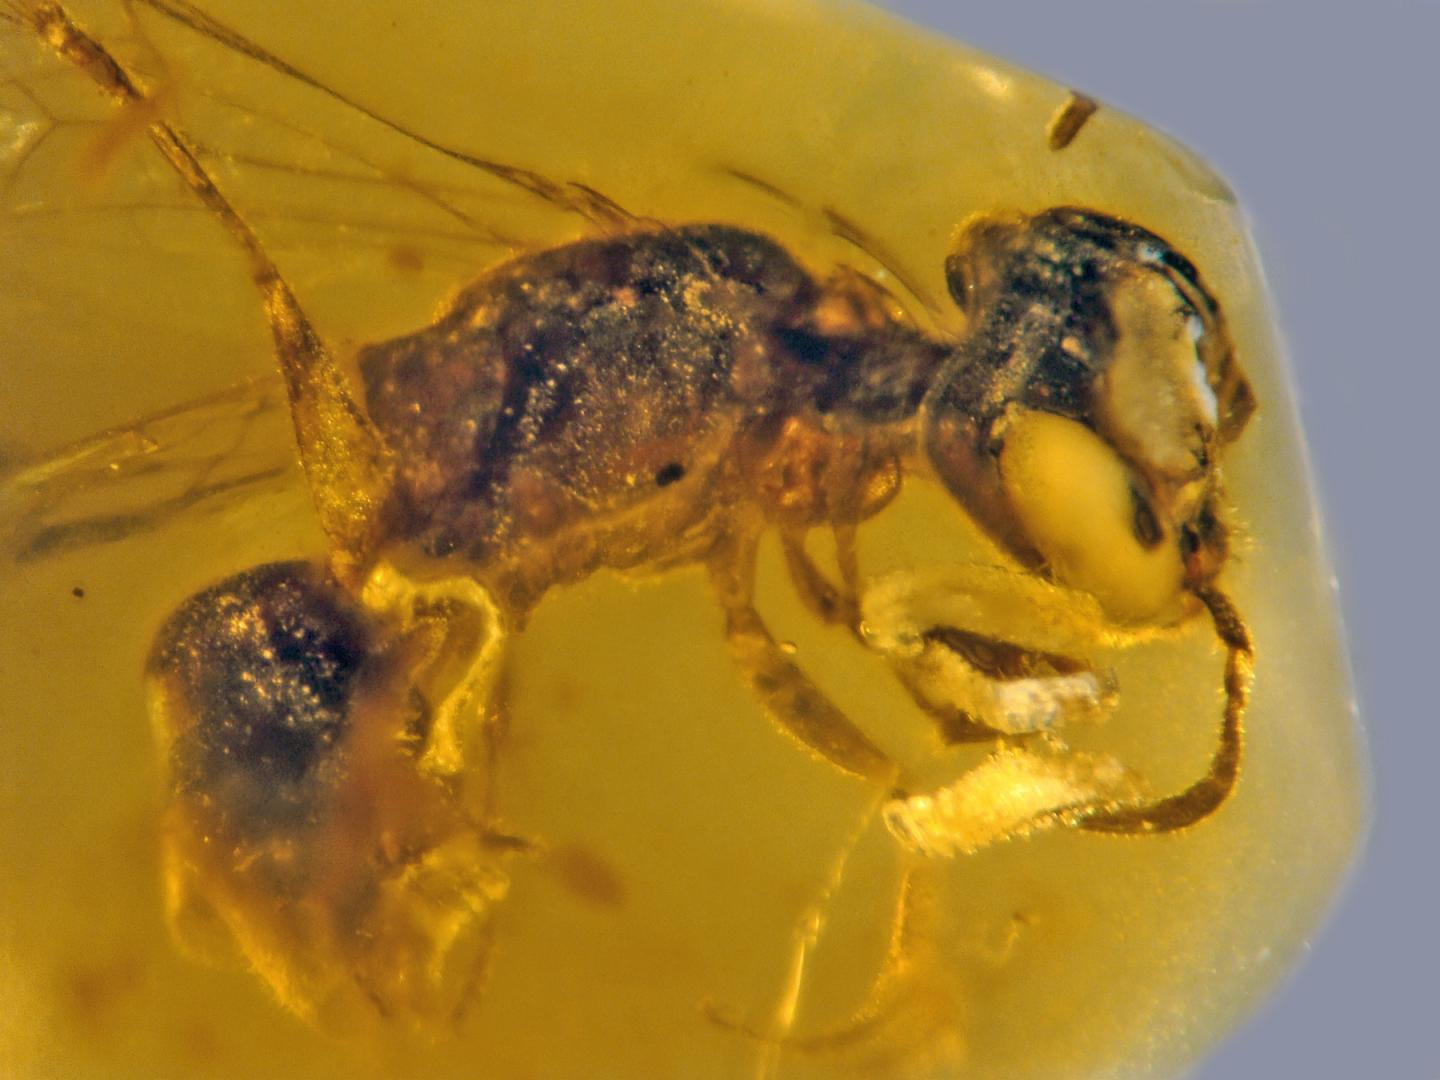 Discoscapa Apicula: Oldest Record Of Primitive Bee With Pollen Dates Back 100 Million Years